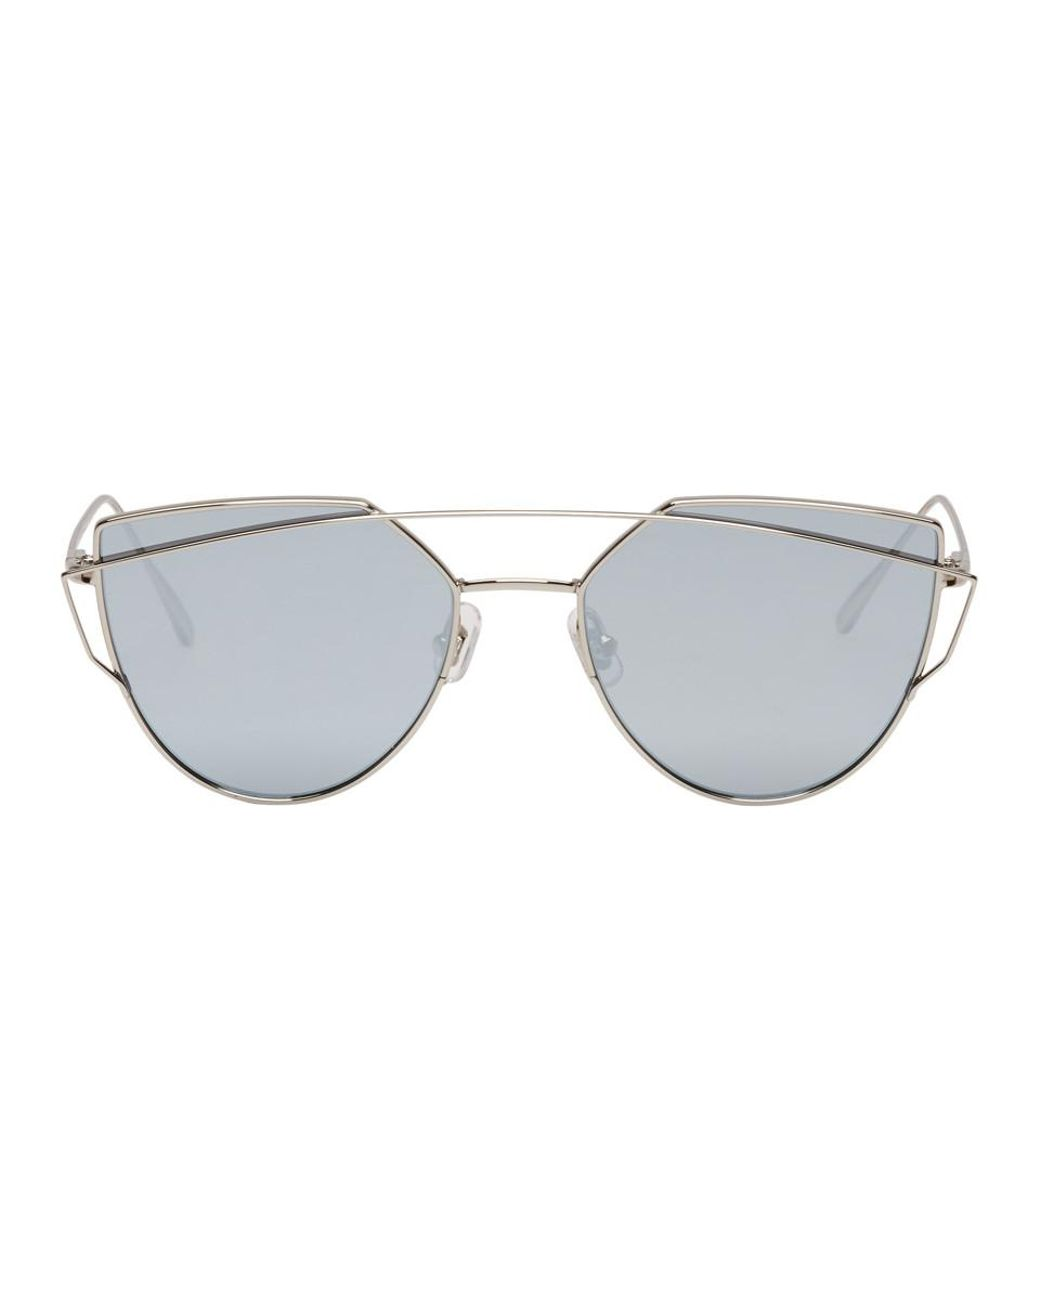 e431327b3ba6 Lyst - Gentle Monster Silver And Blue Love Punch Sunglasses in Metallic